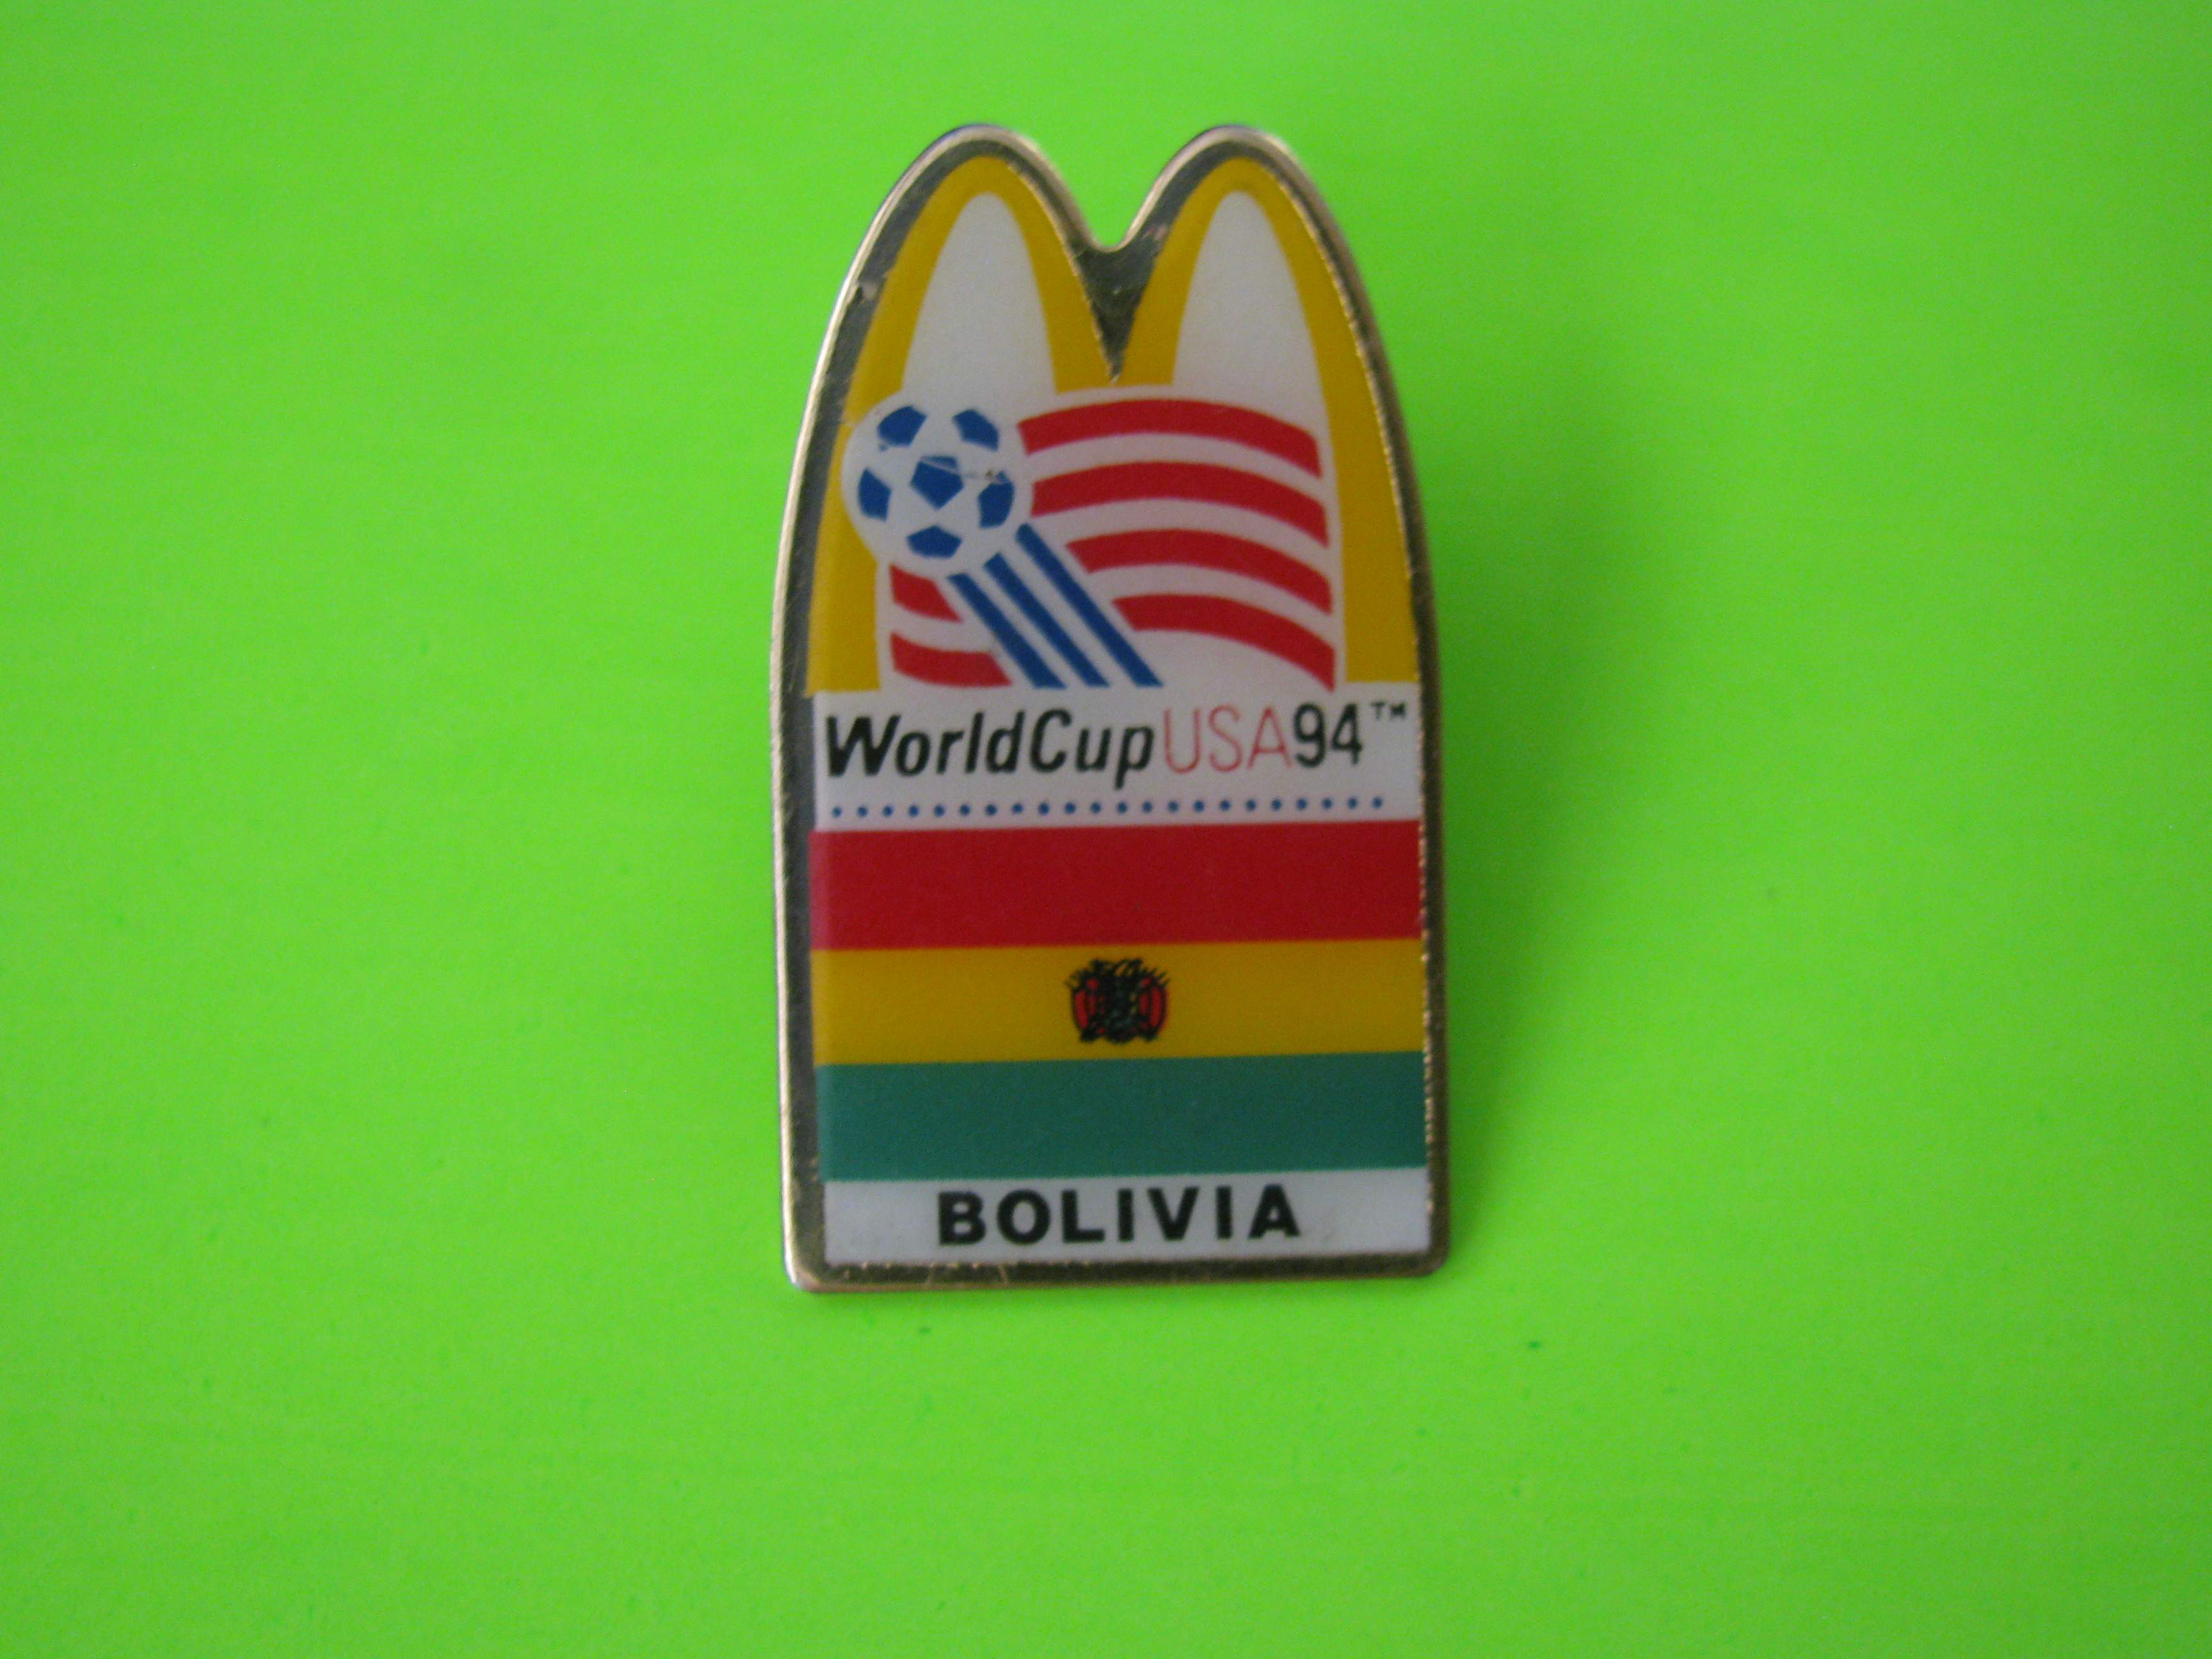 1994 World Cup USA McDonald's Team Bolivia Soccer Pin with Butterfly Clutch